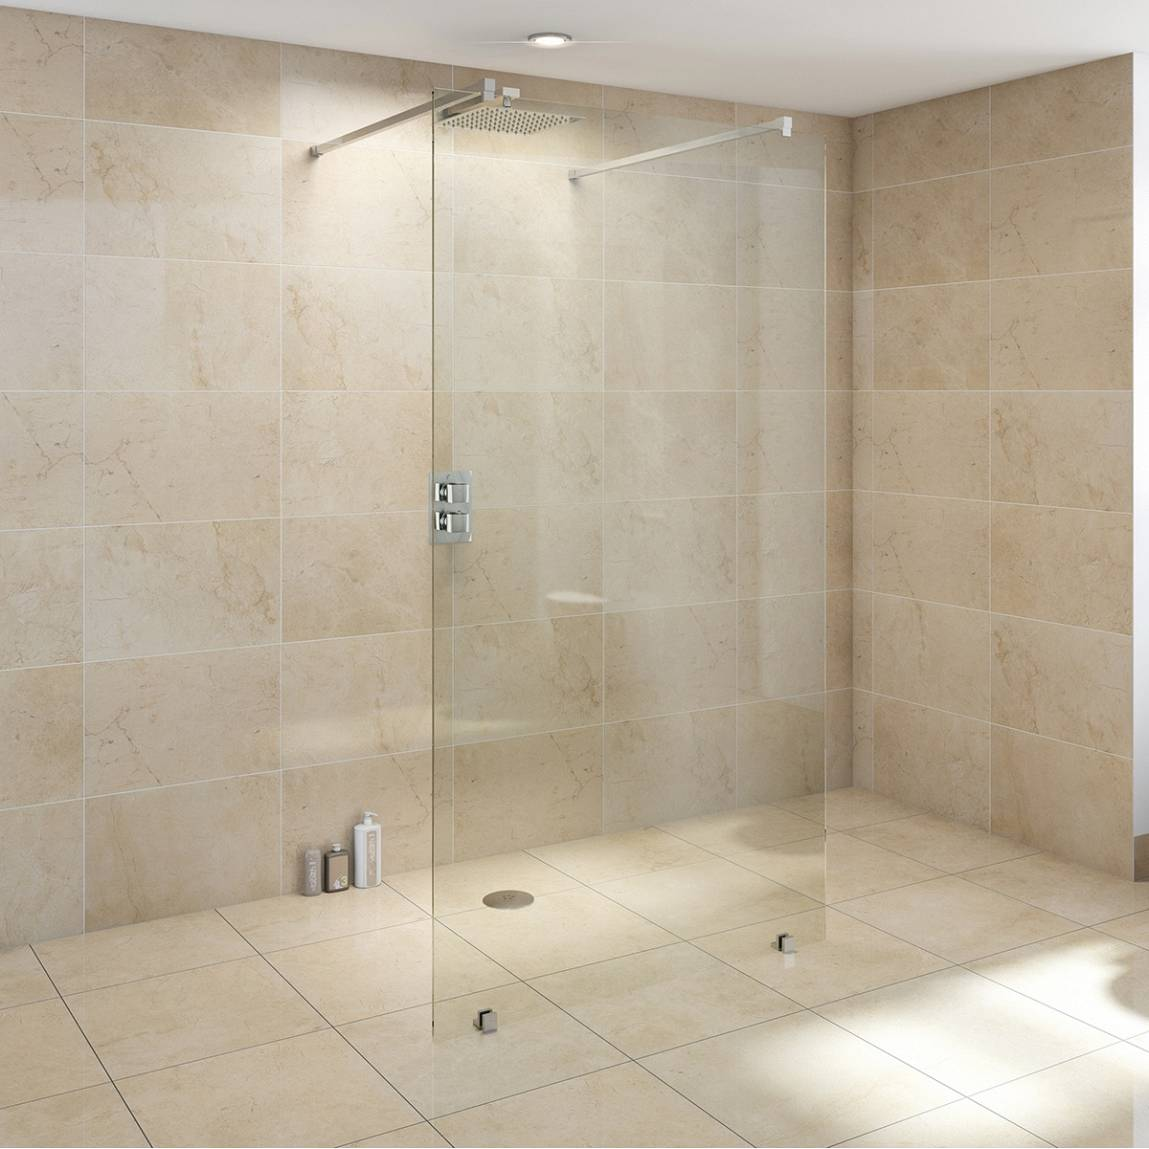 arm room support rooms medium showers enclosures plumbing wet square in screen and sizes shower premier wetroom lrg various image victorian walk screens